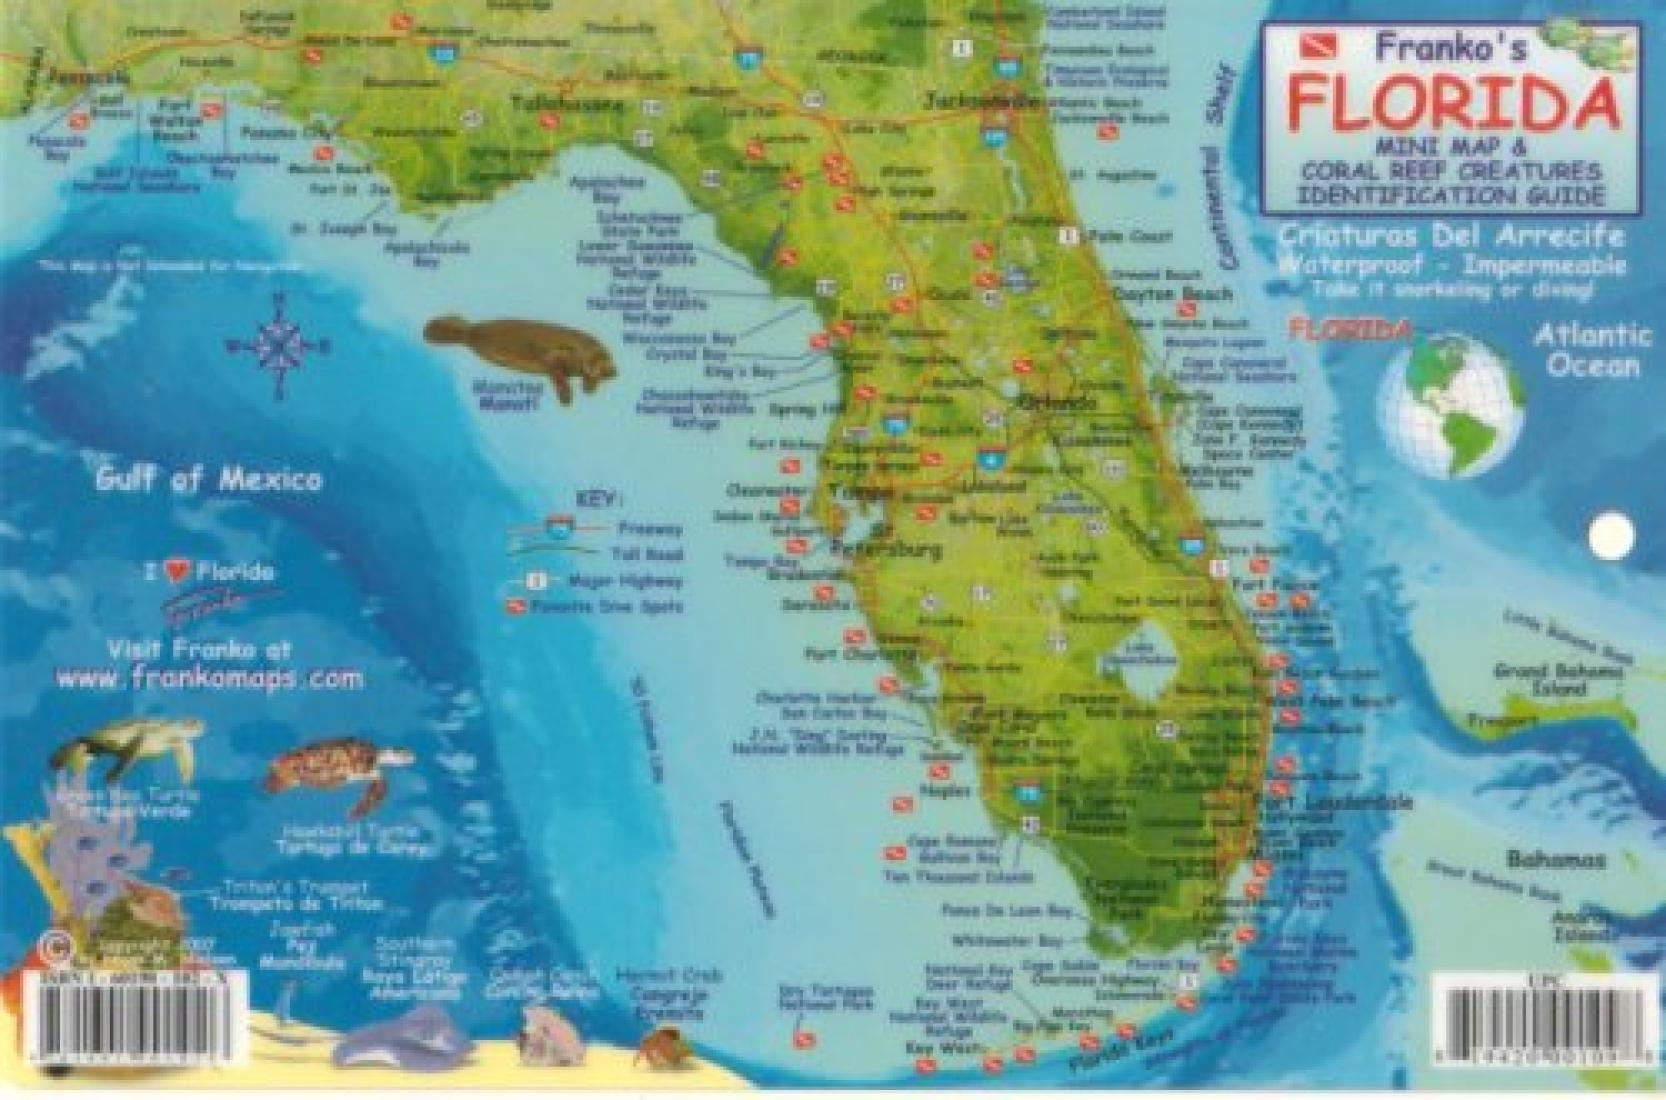 Map Of Florida Keys.Florida Keys Fish Id Card By Frankos Maps Ltd